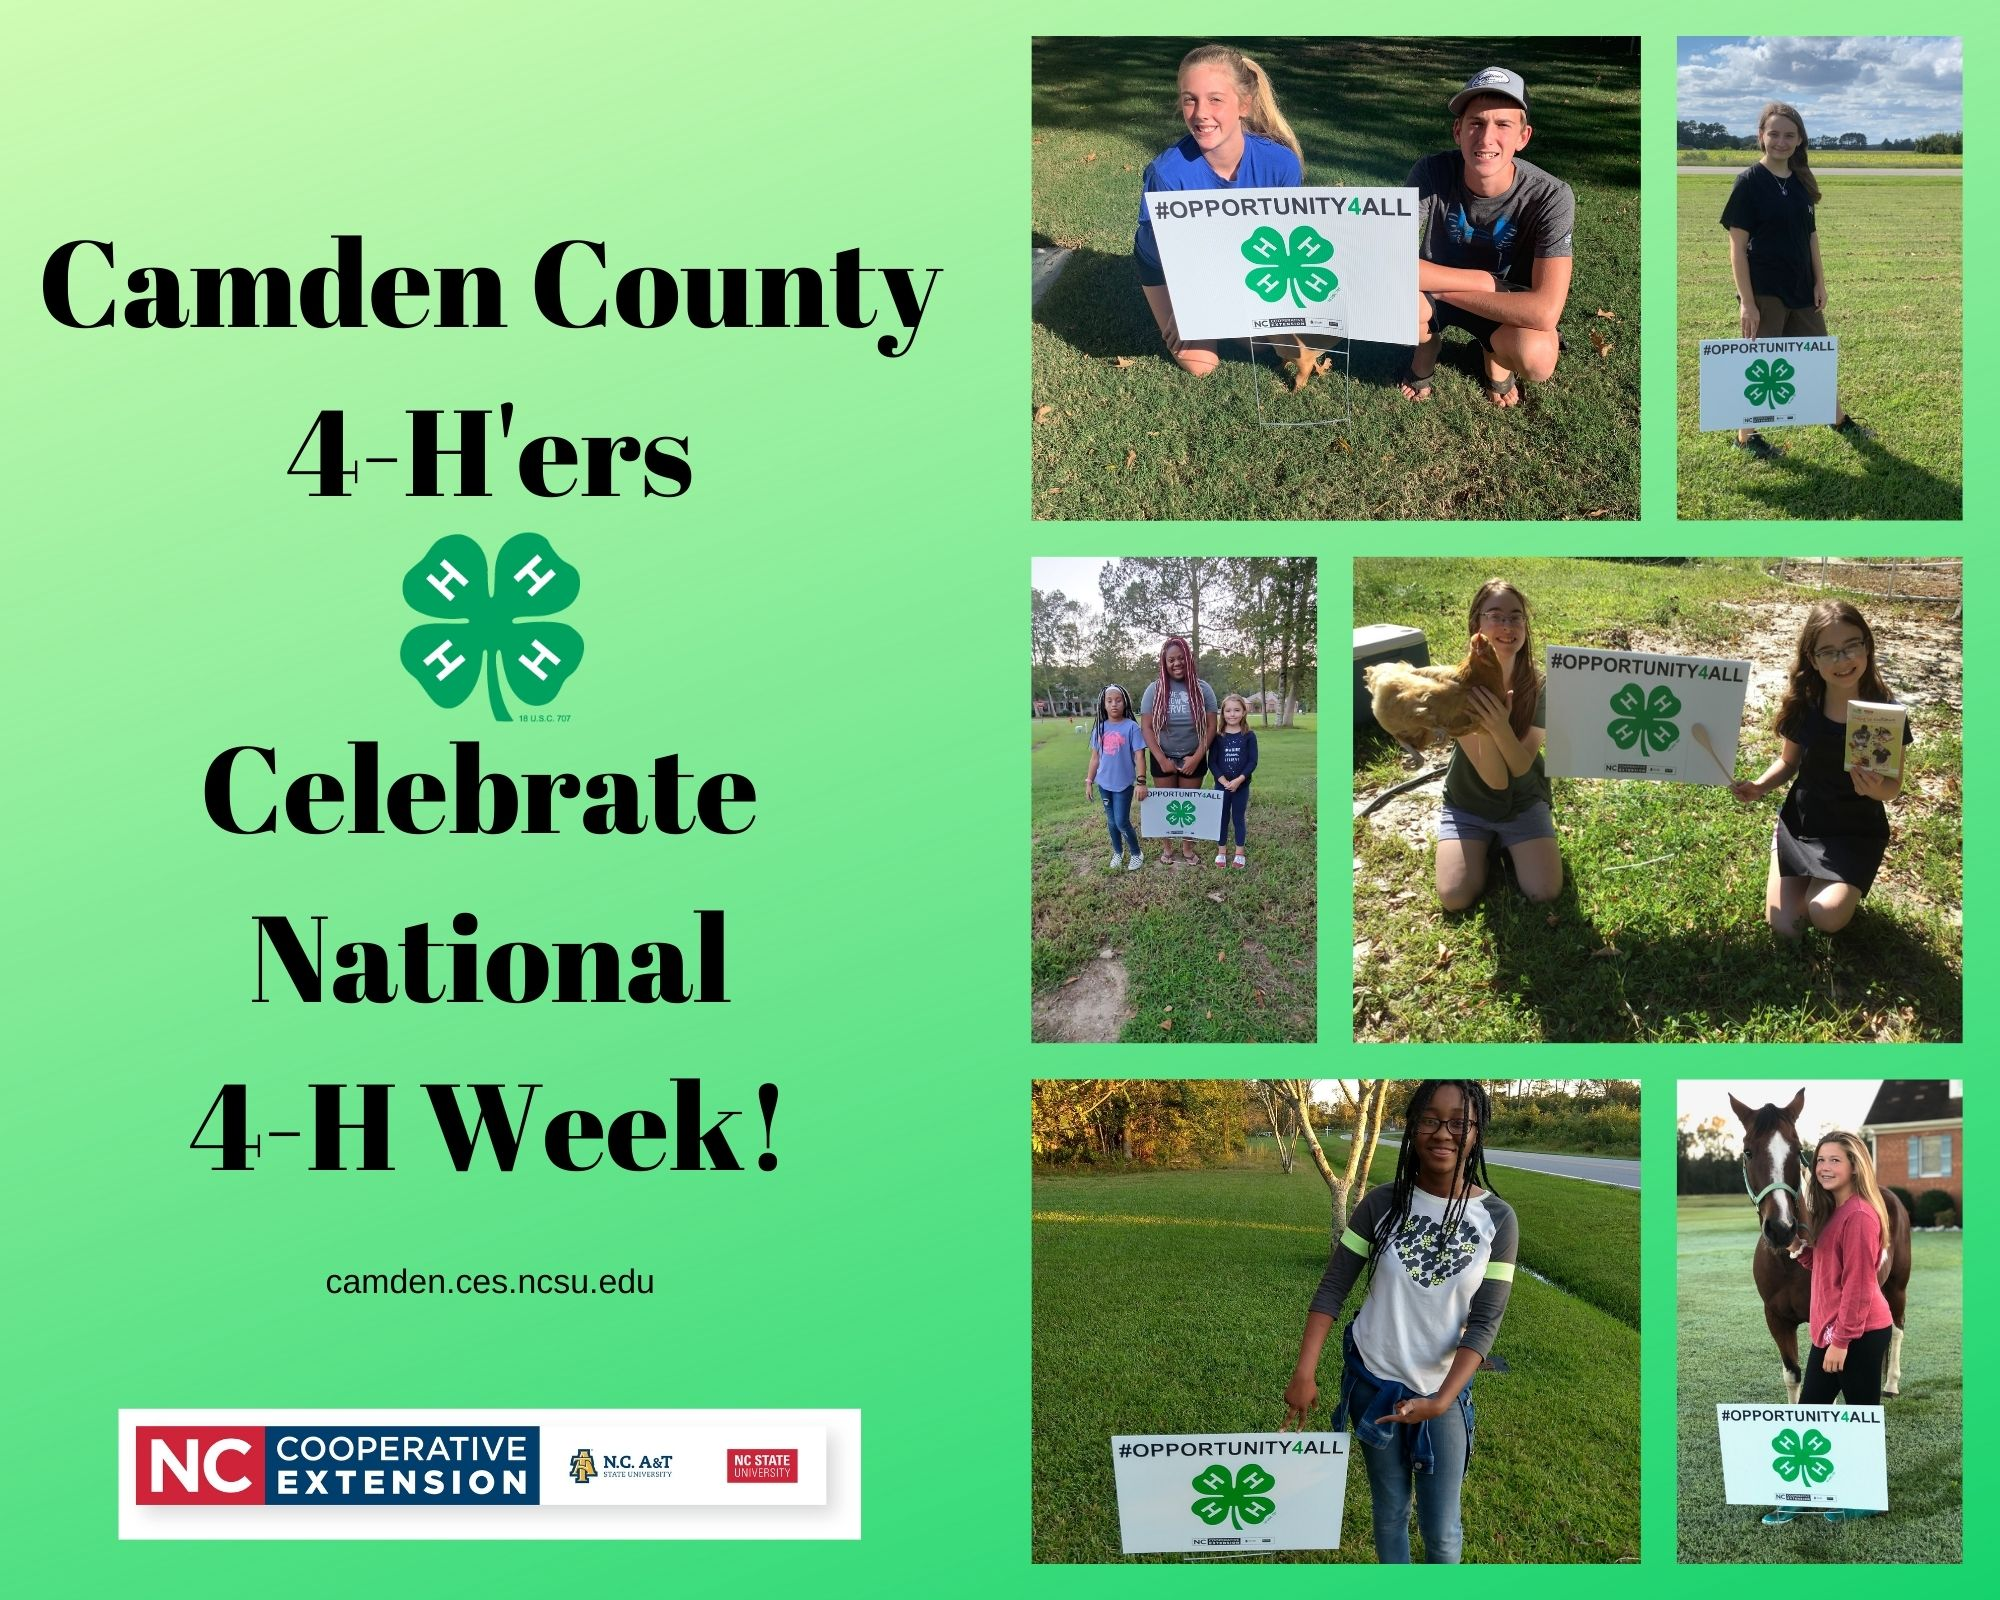 Pictures of 4-H'ers